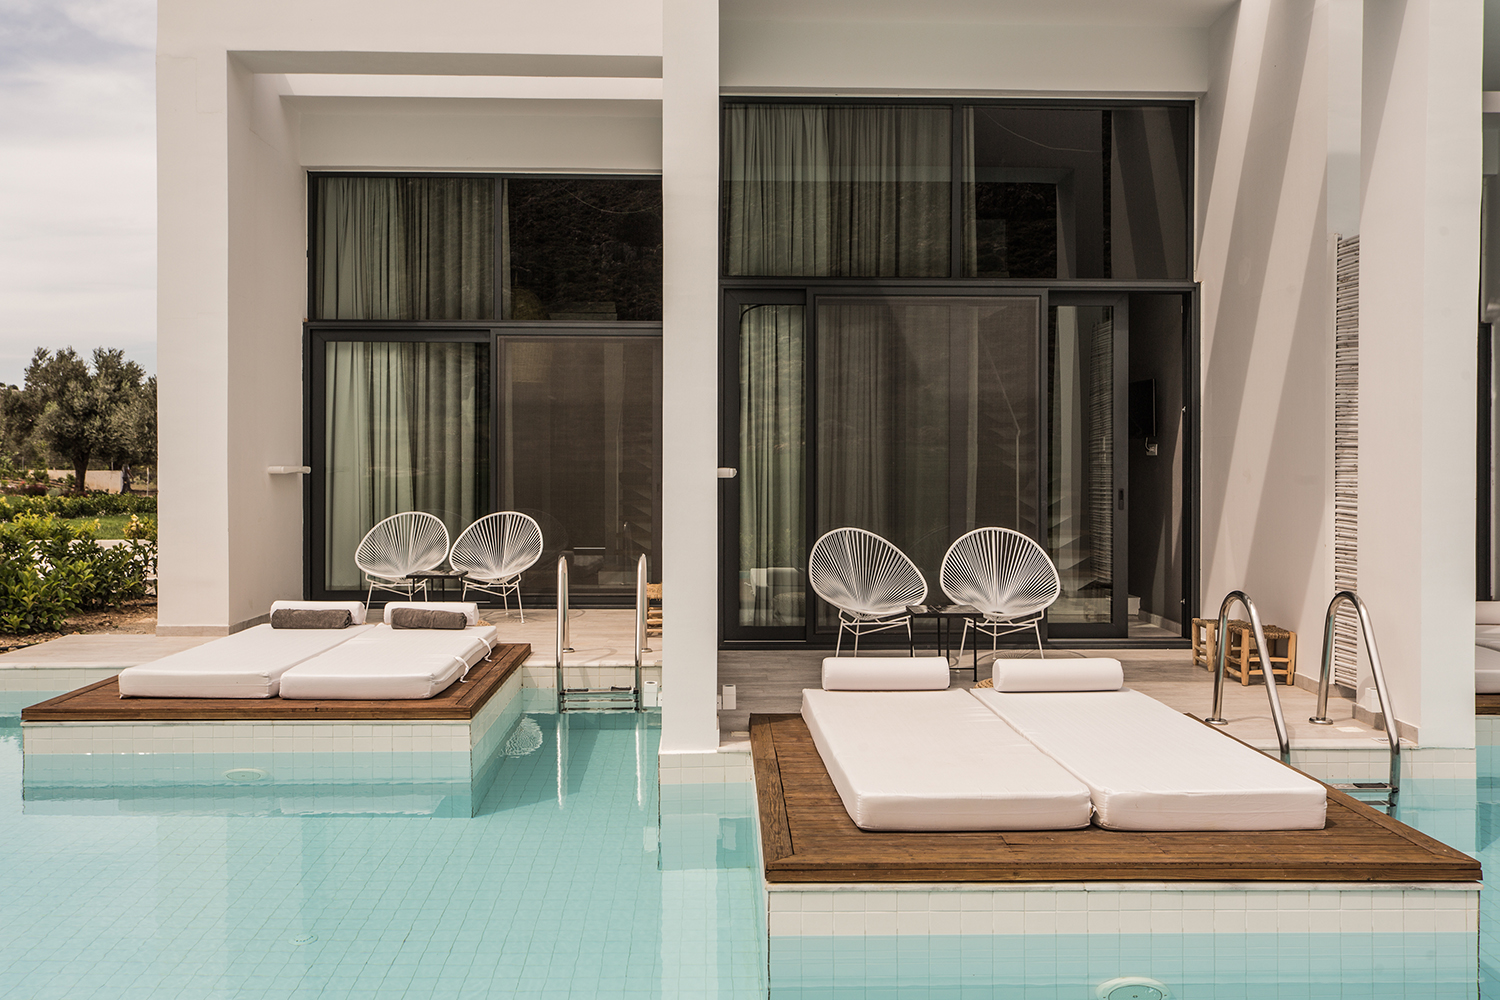 Casa Cook private pool Acapulco chairs